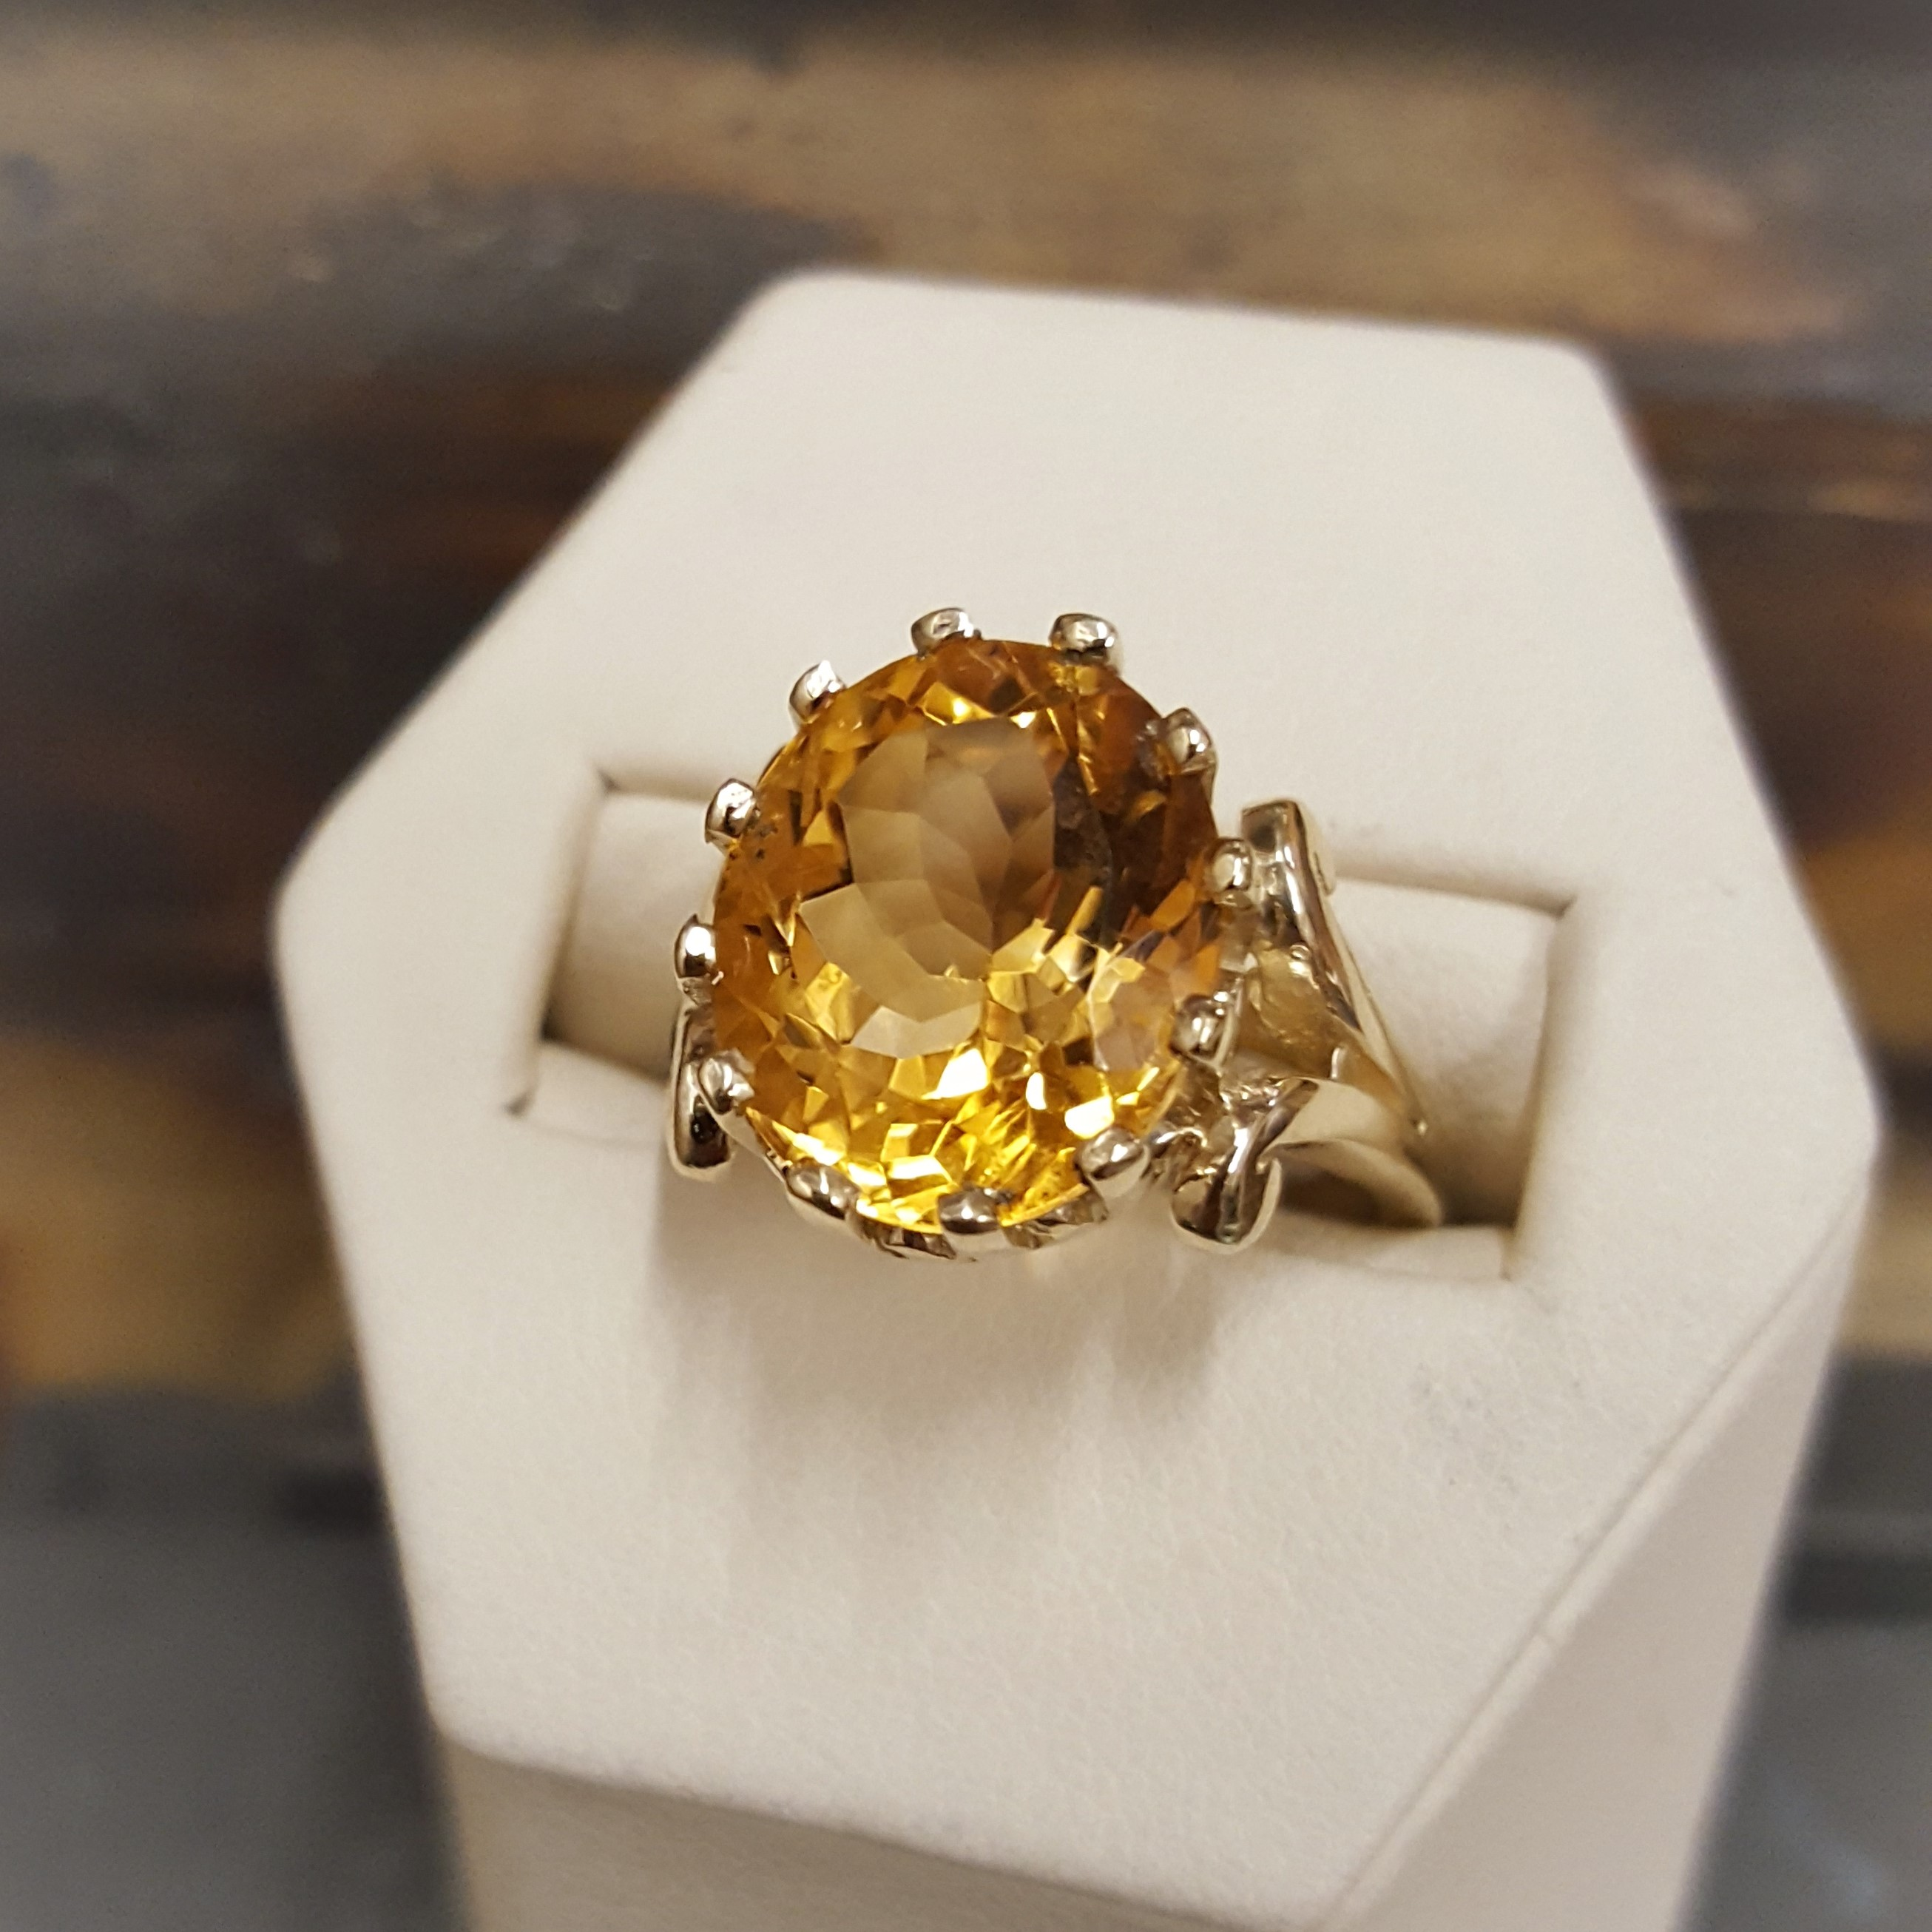 Large Oval Faceted Citrine